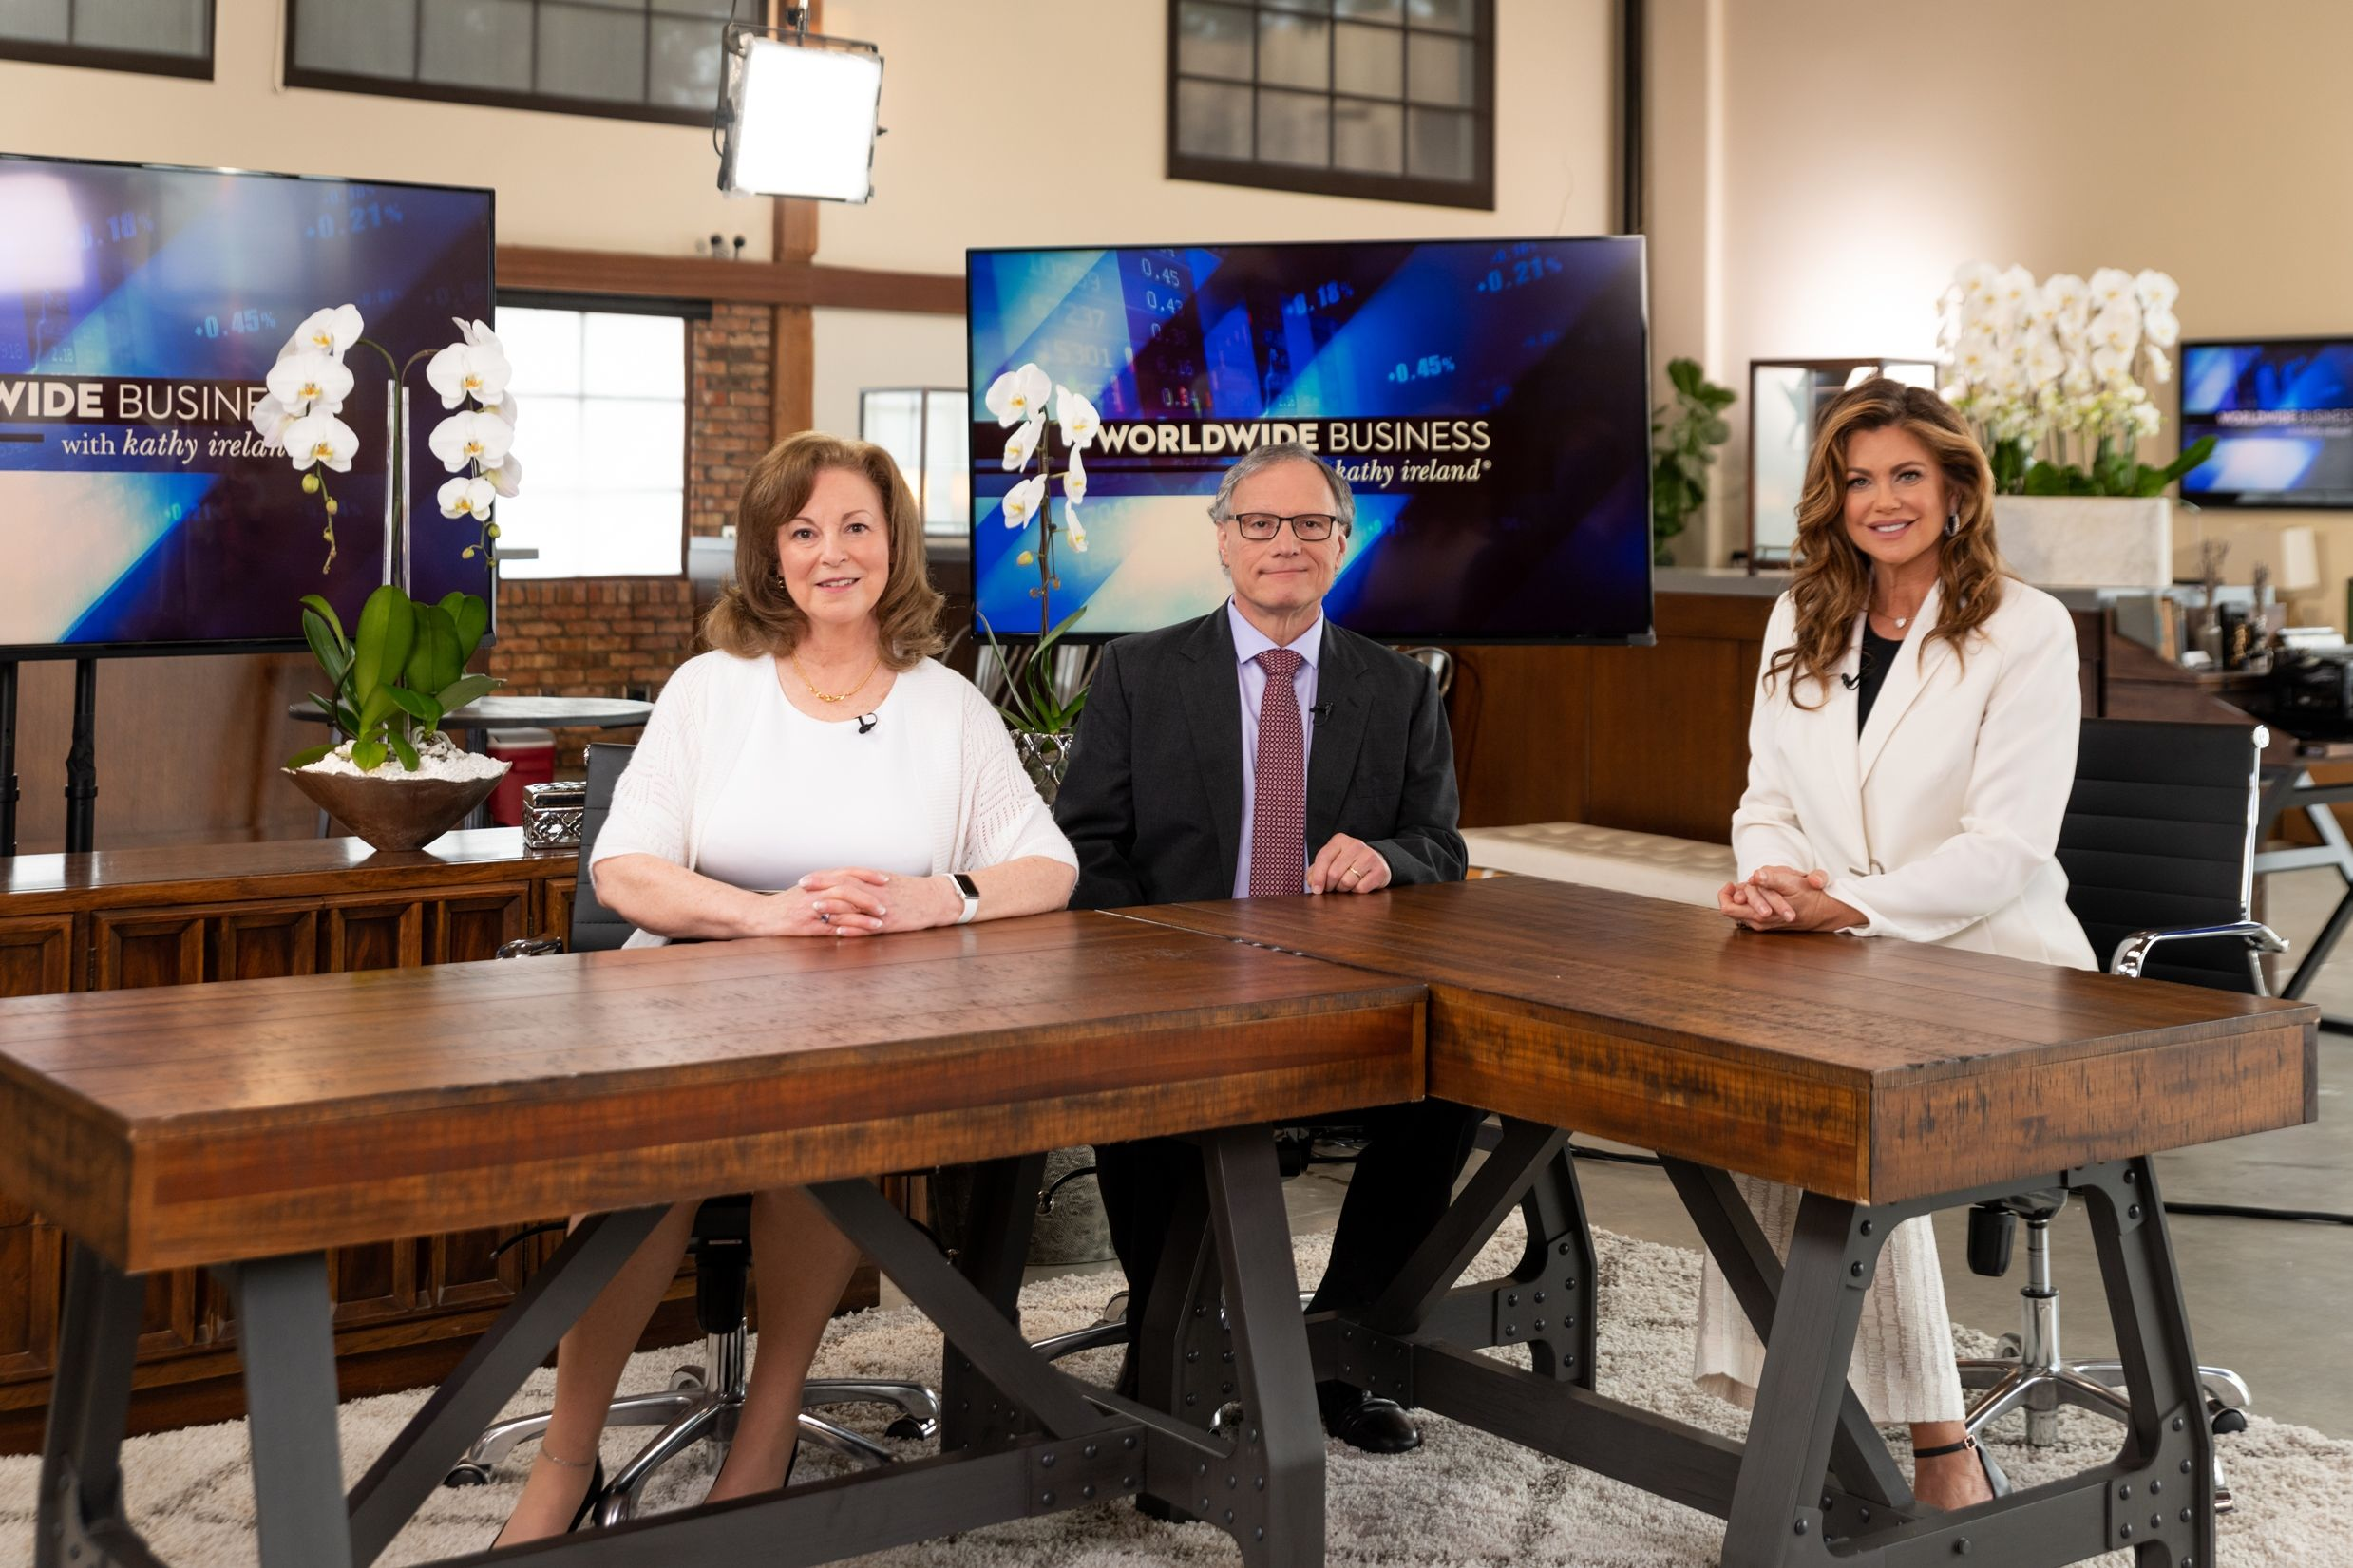 Worldwide Business With Kathy Ireland Highlights Innovative Solutions To Financial Analysis Issues With Demote Kathy Ireland Financial Analysis Financial News